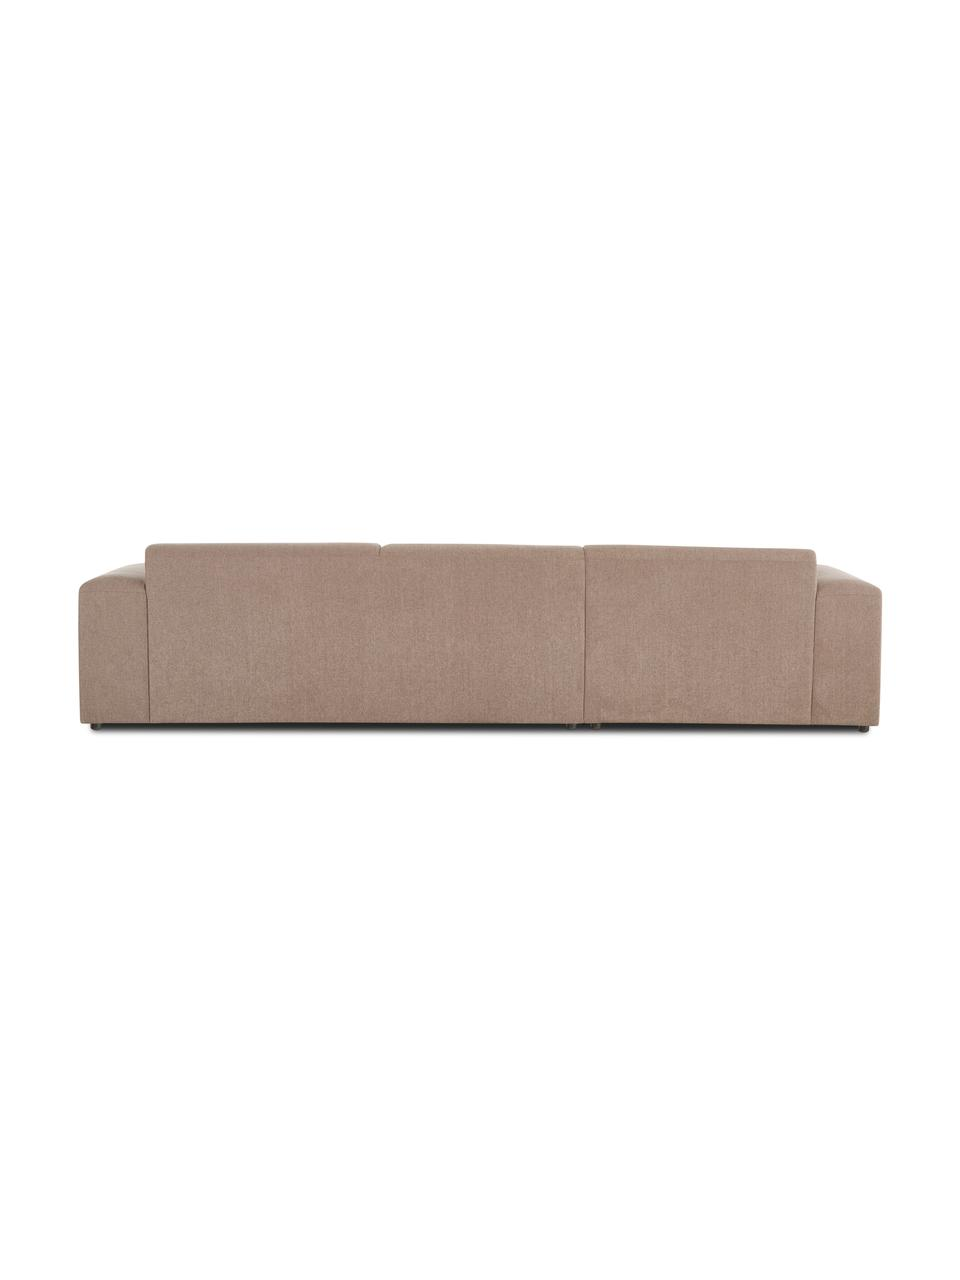 Canapé d'angle 4 places taupe Melva, Tissu taupe